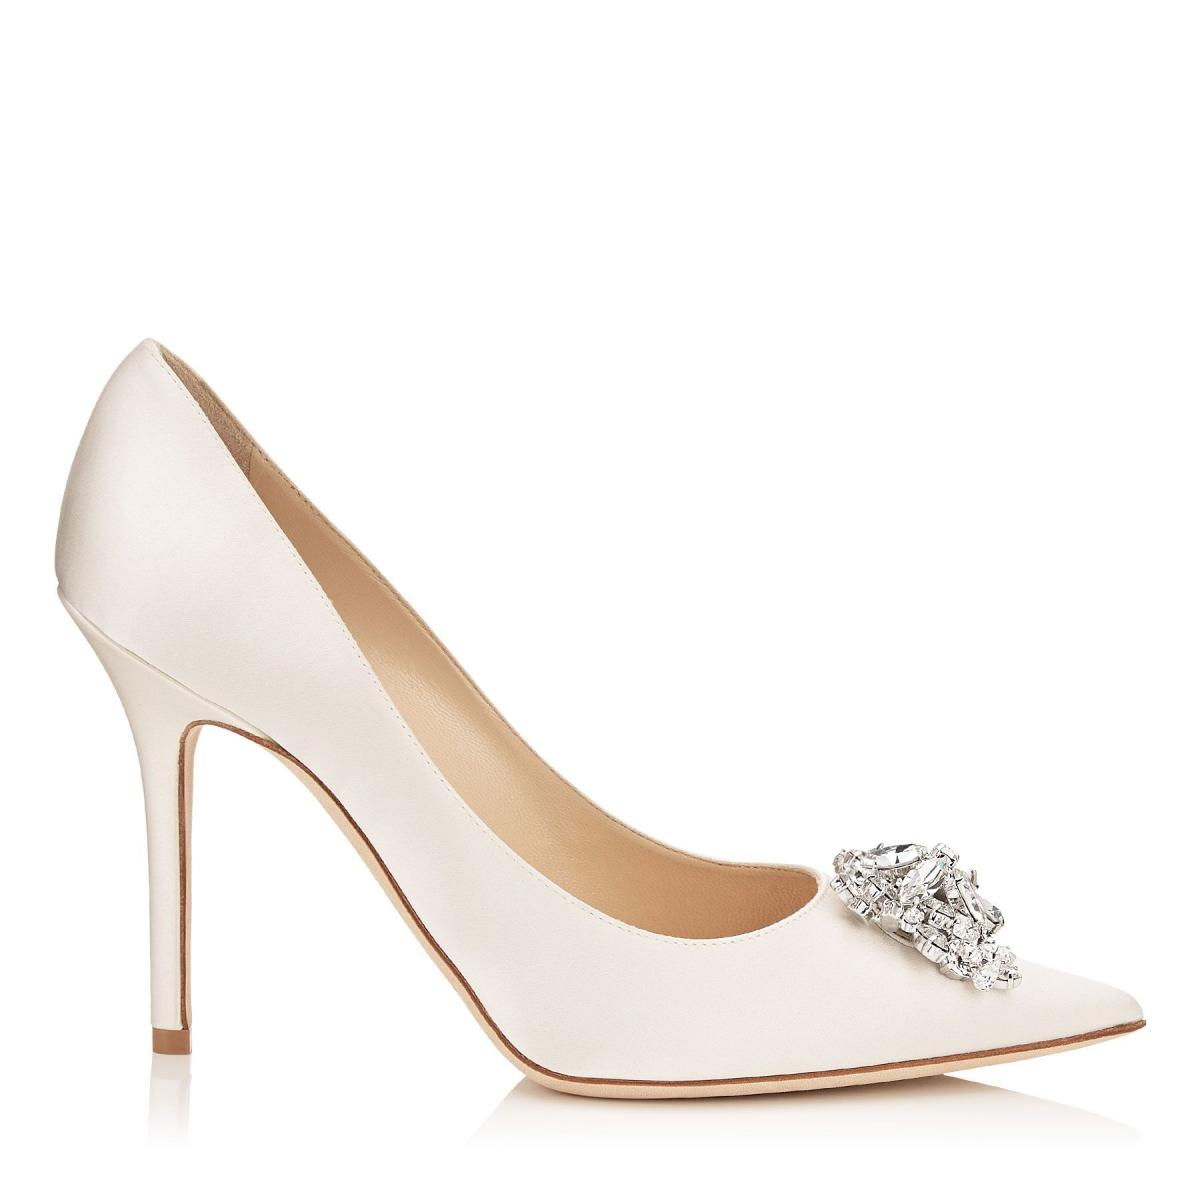 Jimmy choo bridal shoes 2018